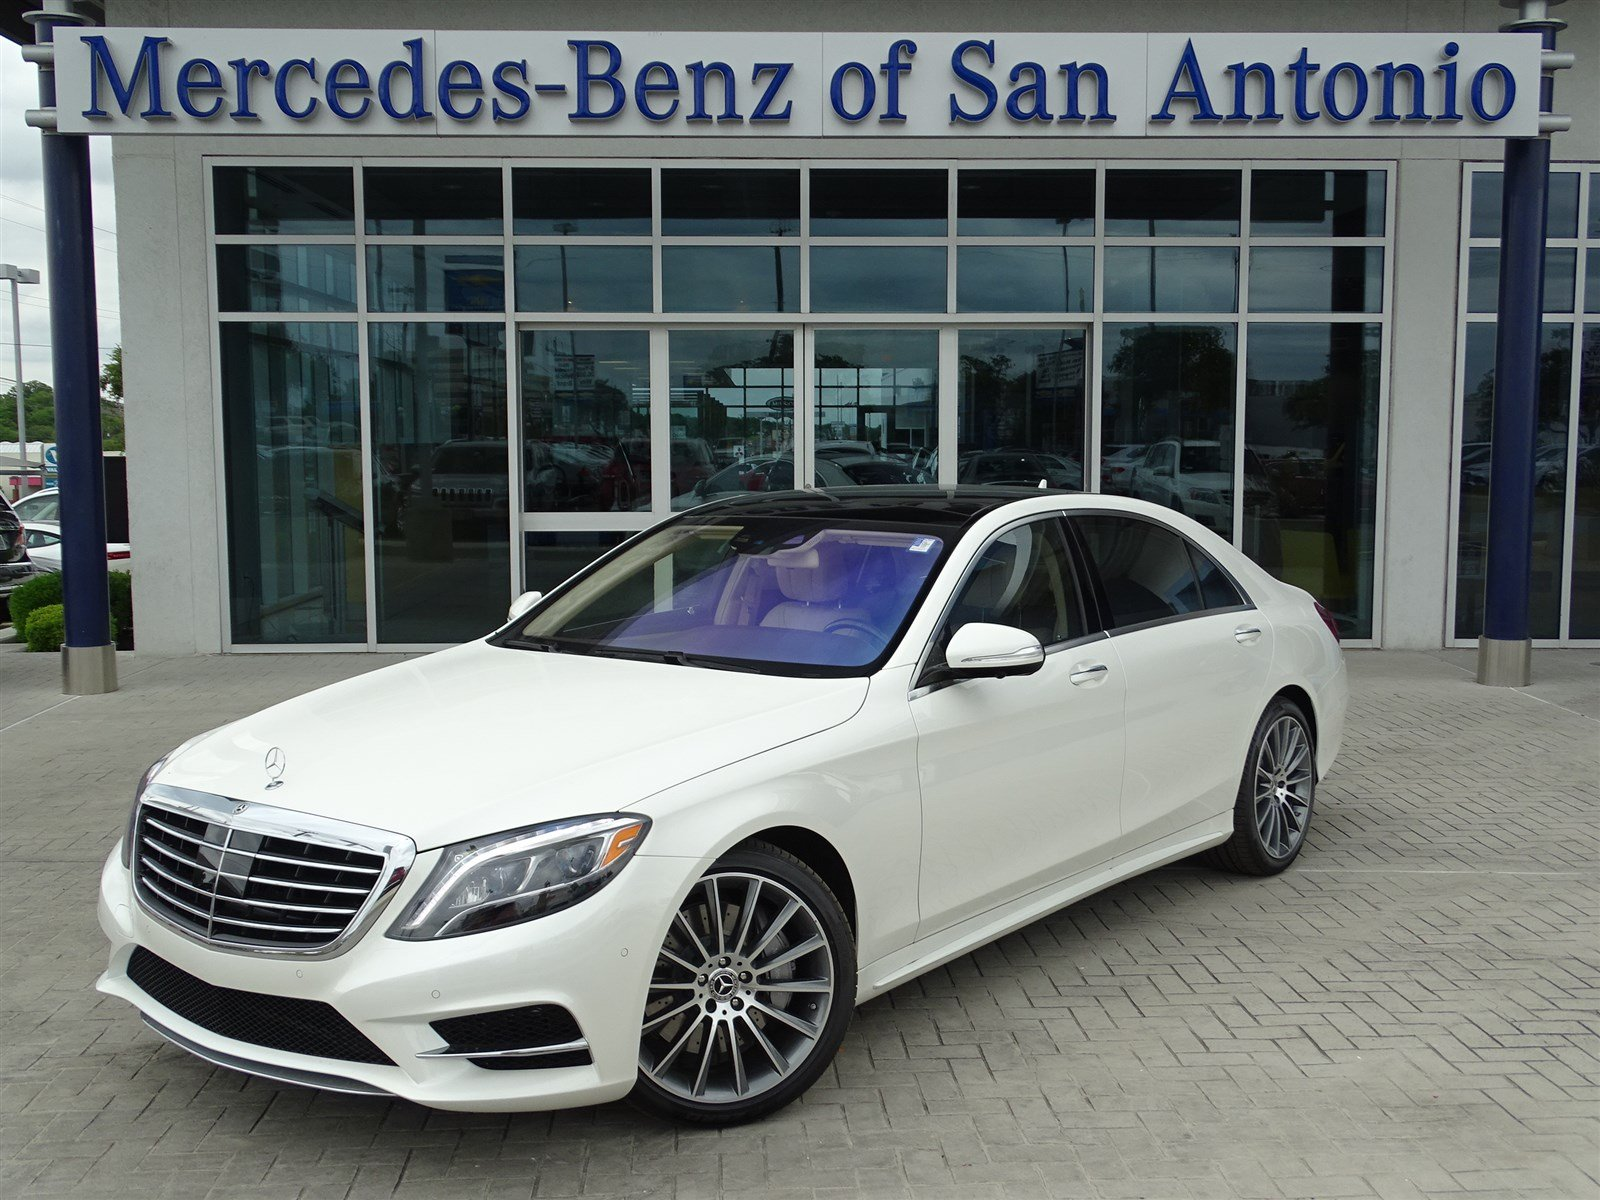 new 2017 mercedes benz s class s 550 sedan in san antonio n15823 mercedes benz of san antonio. Black Bedroom Furniture Sets. Home Design Ideas